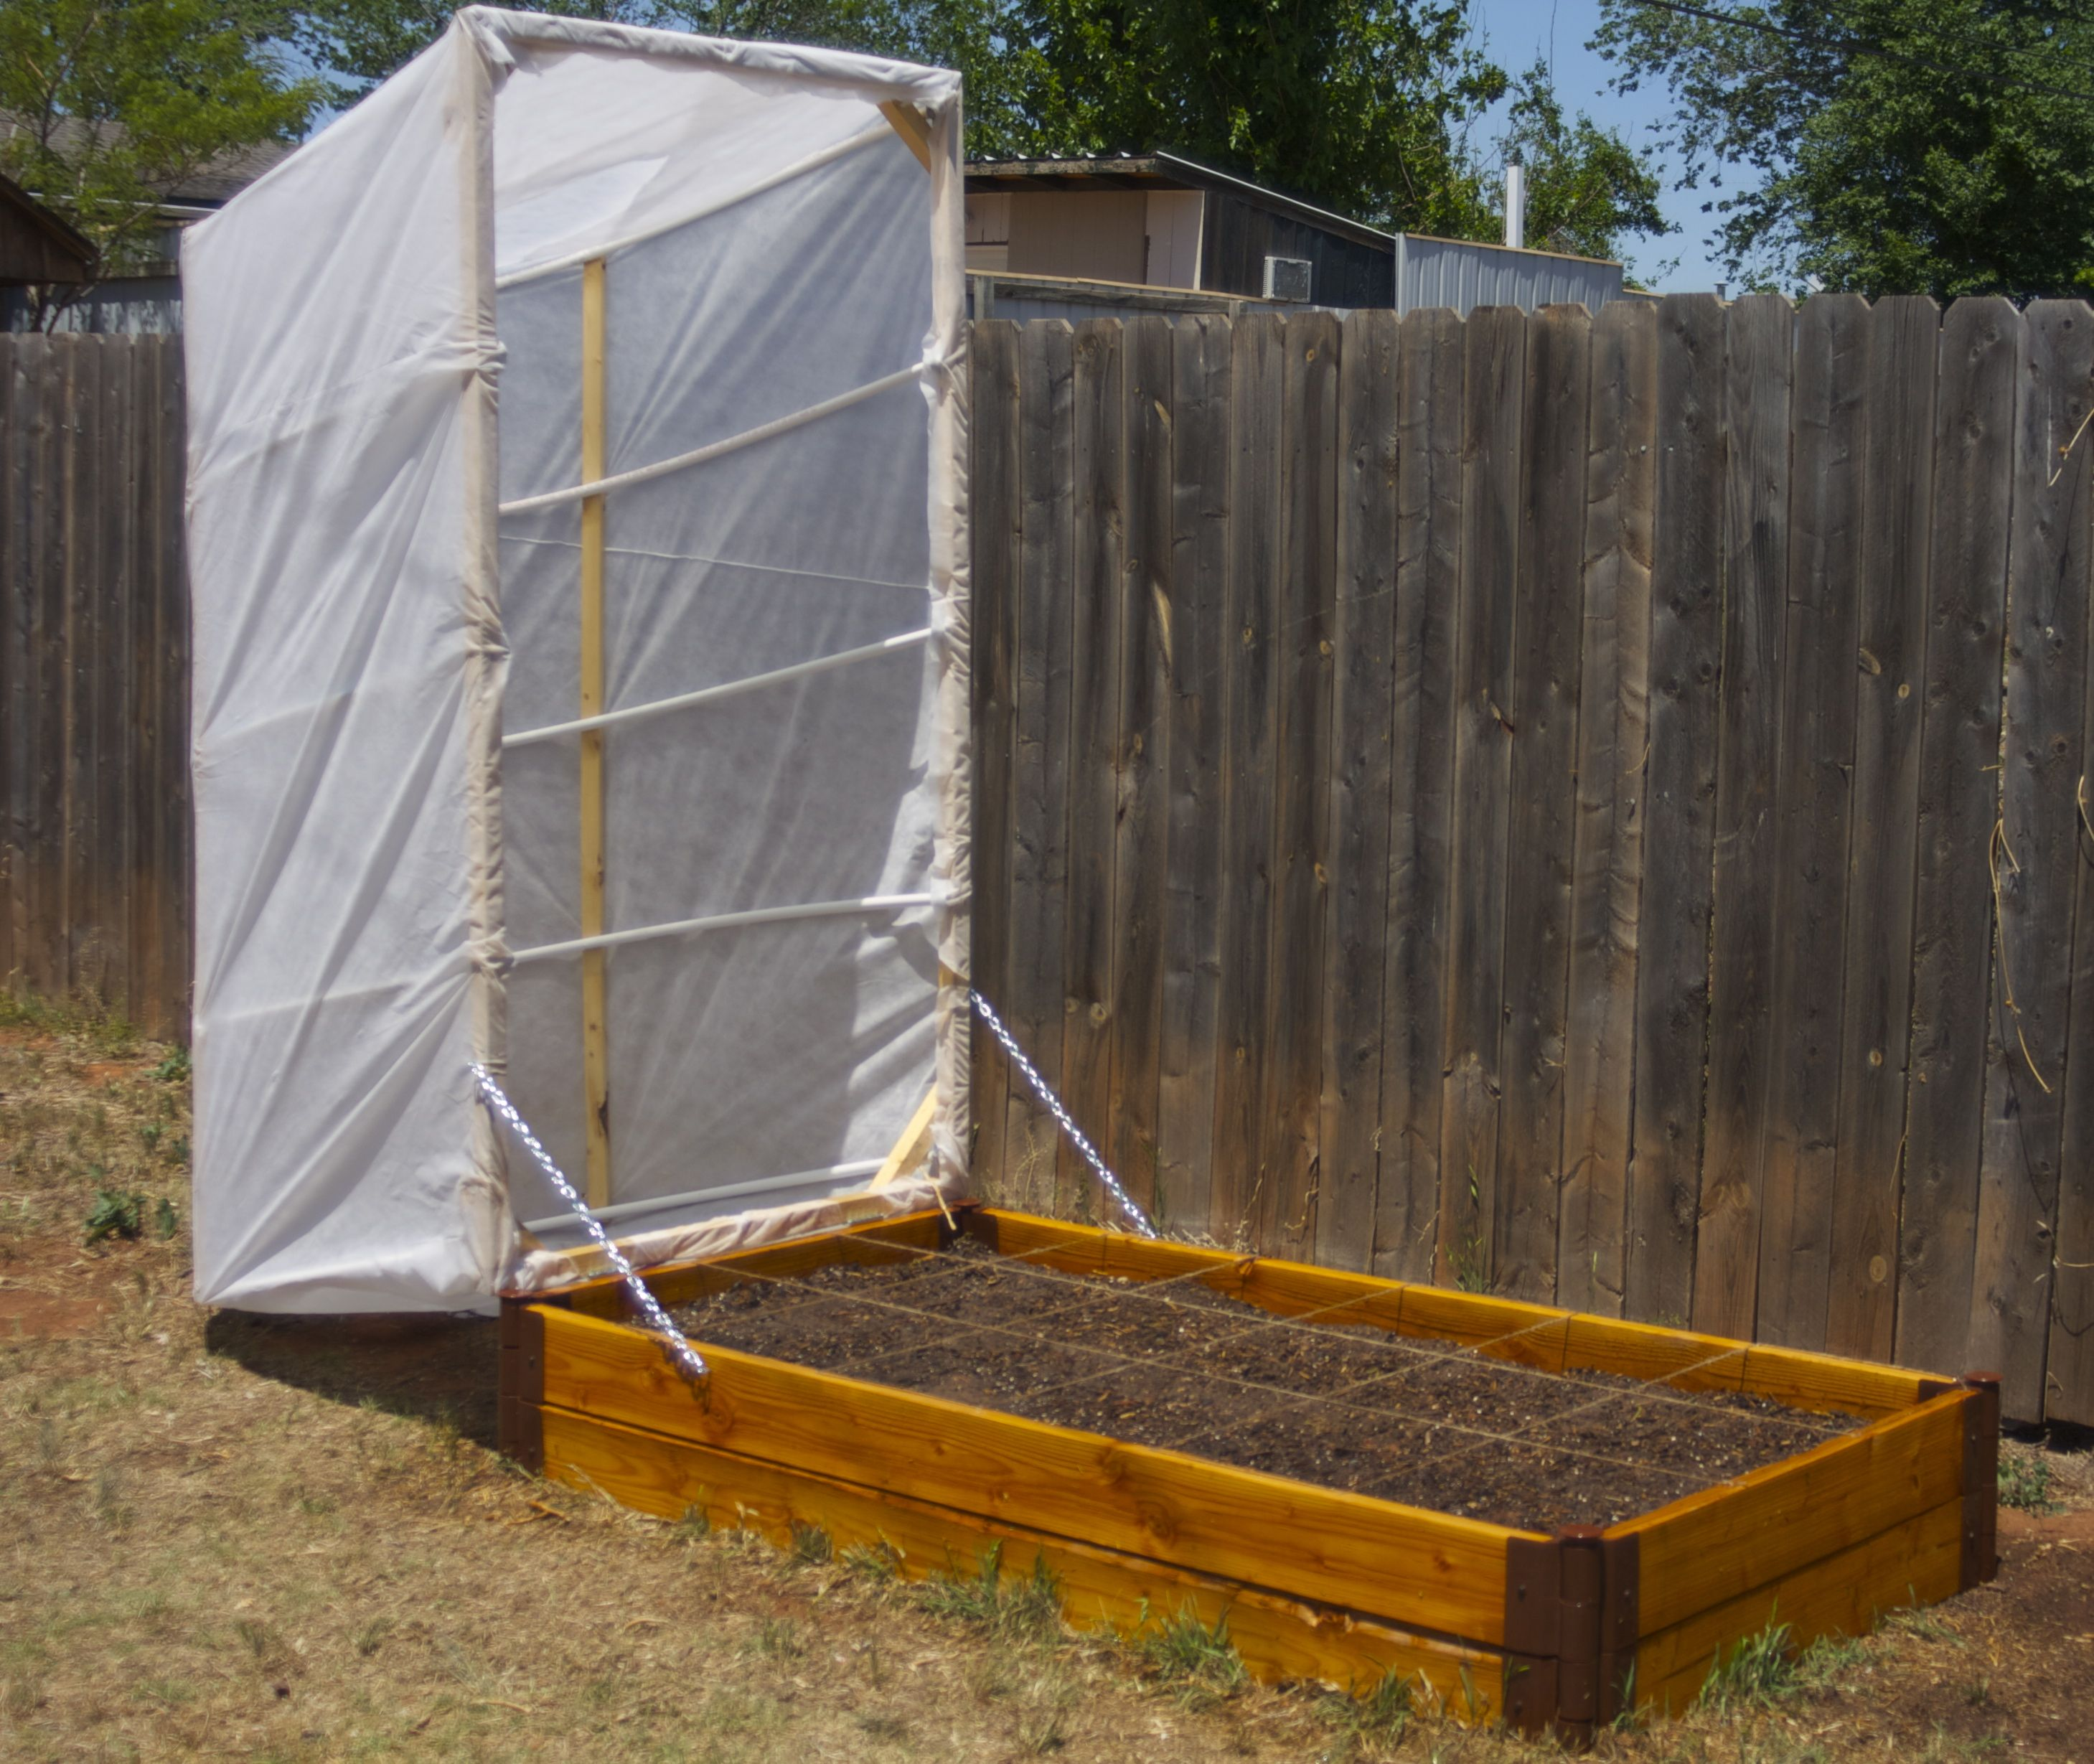 Diy Raised Bed Vegetable Garden With Greenhouse Cover Raised Bed Gardens And Garden Planning